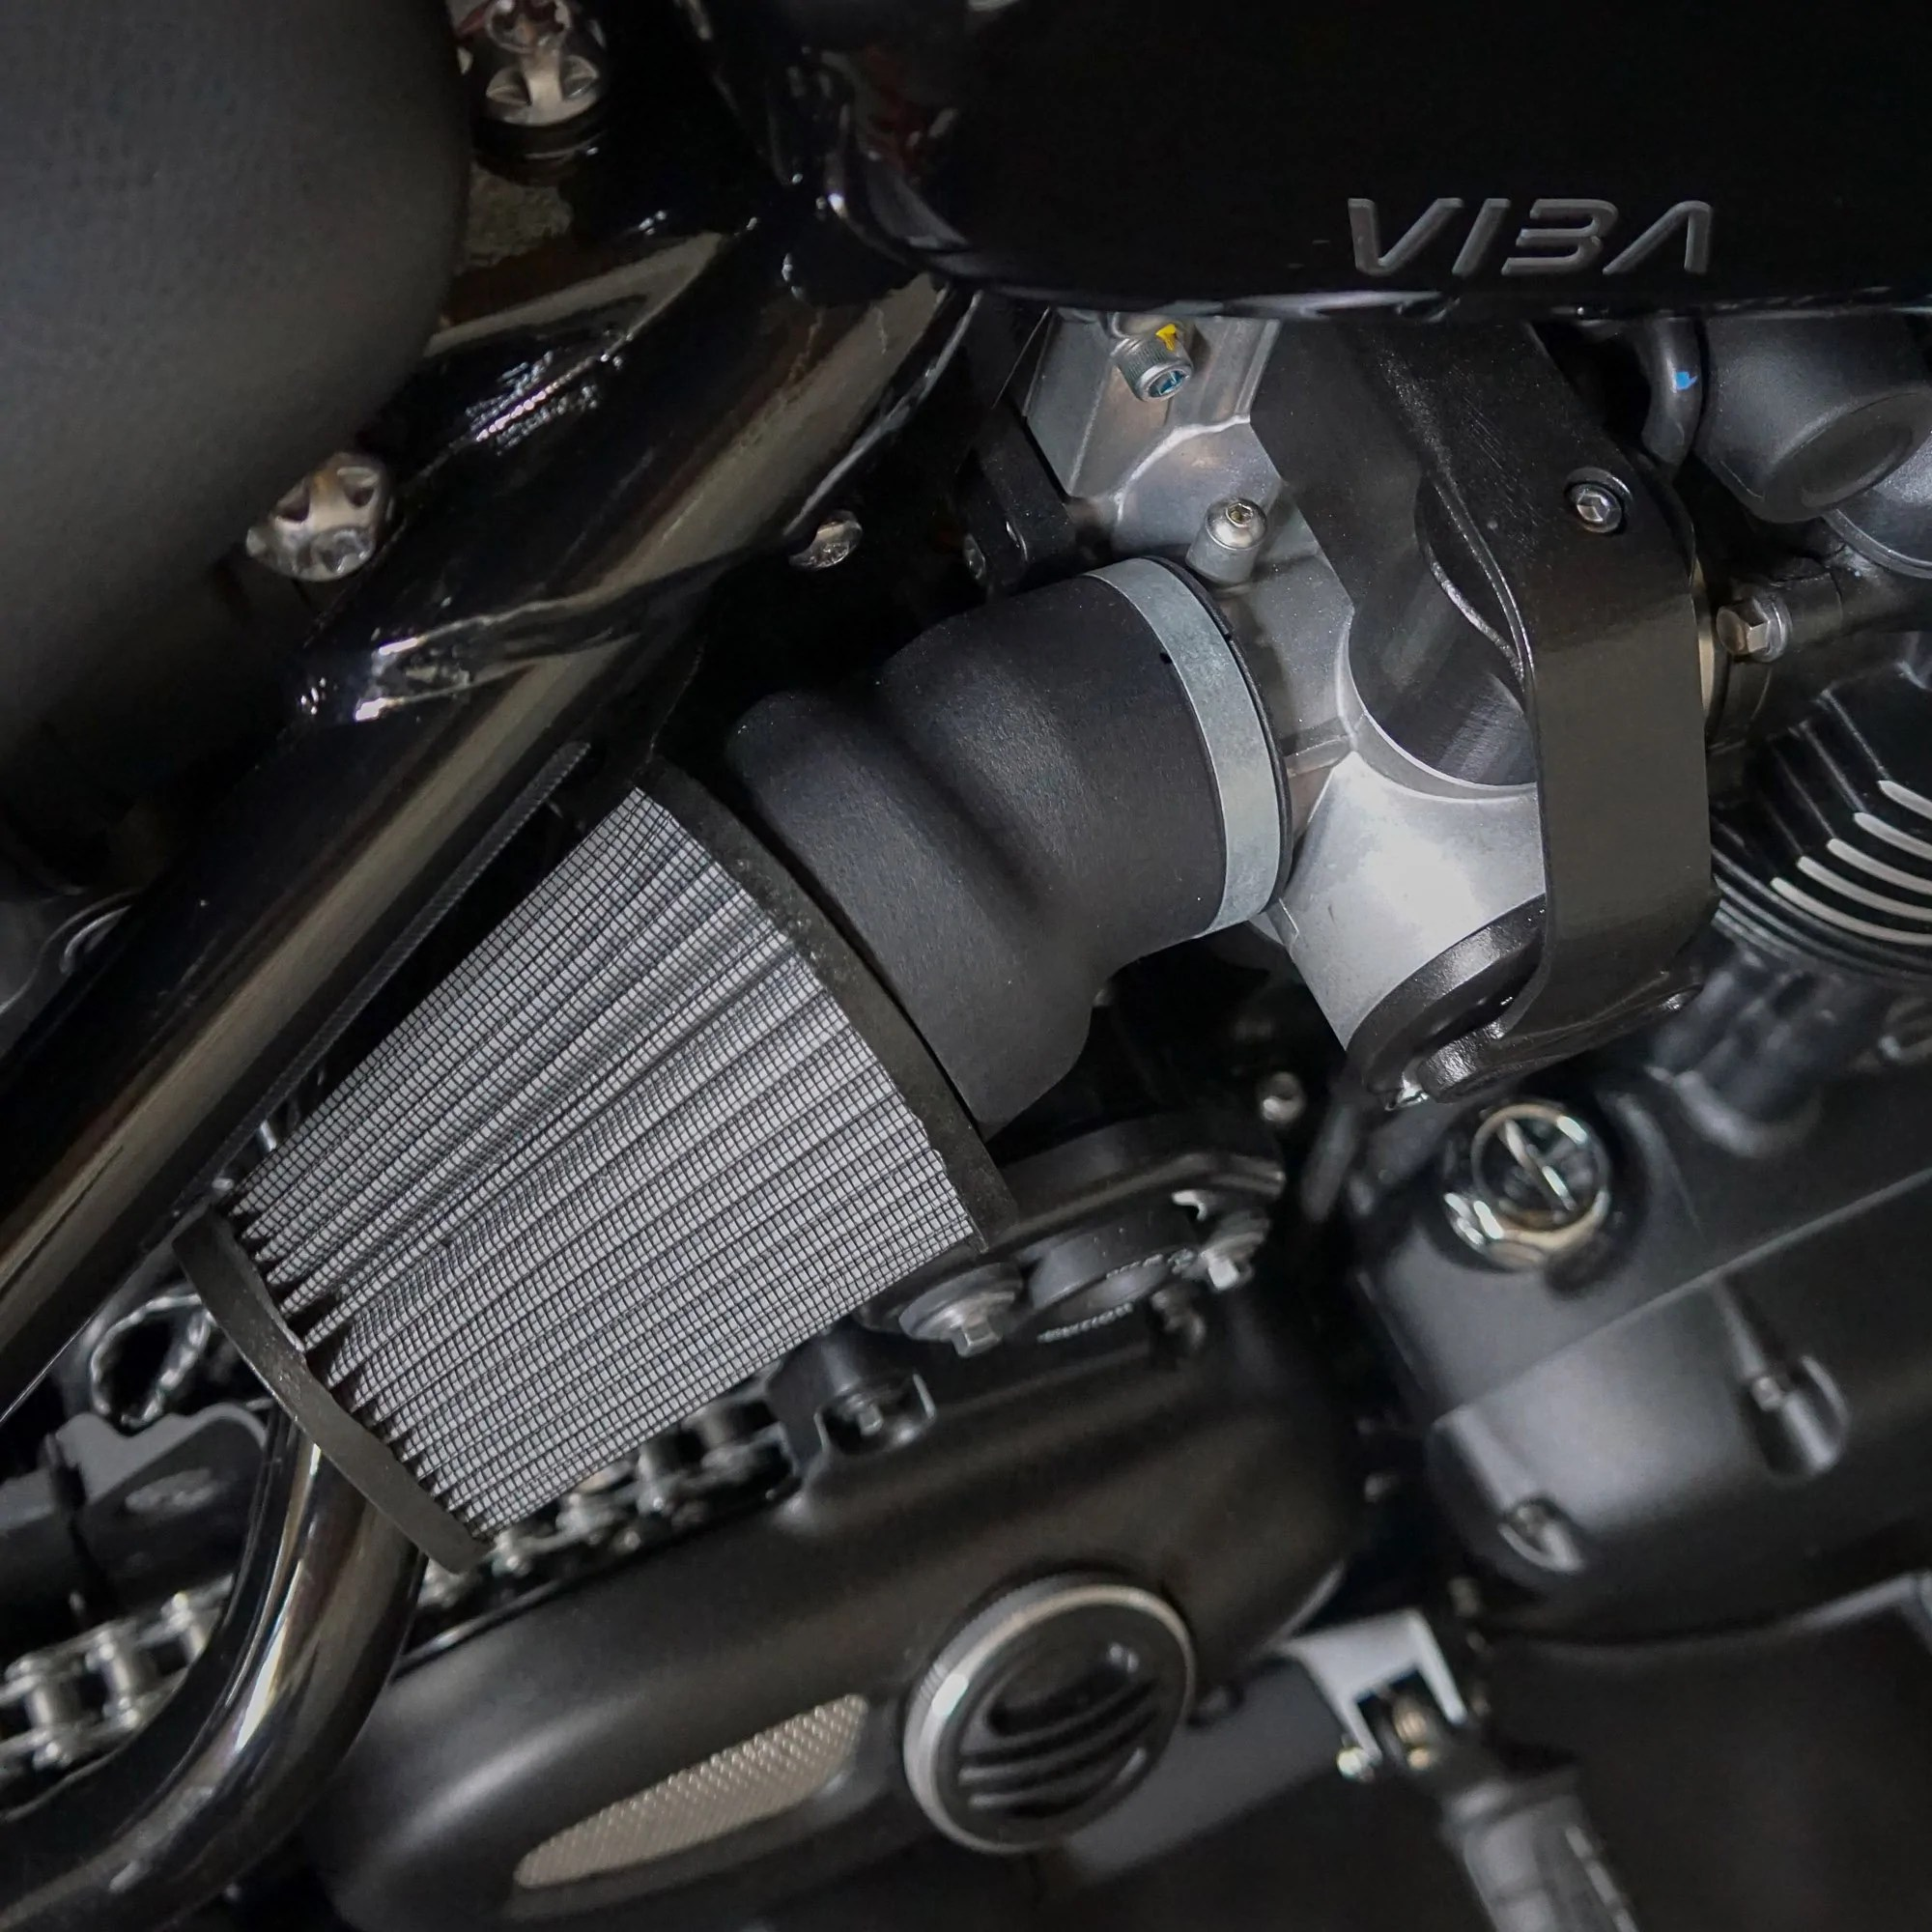 hight resolution of viba wire protection kit thearsenale viva wiring harness cover airflow kit triumph bobber t120